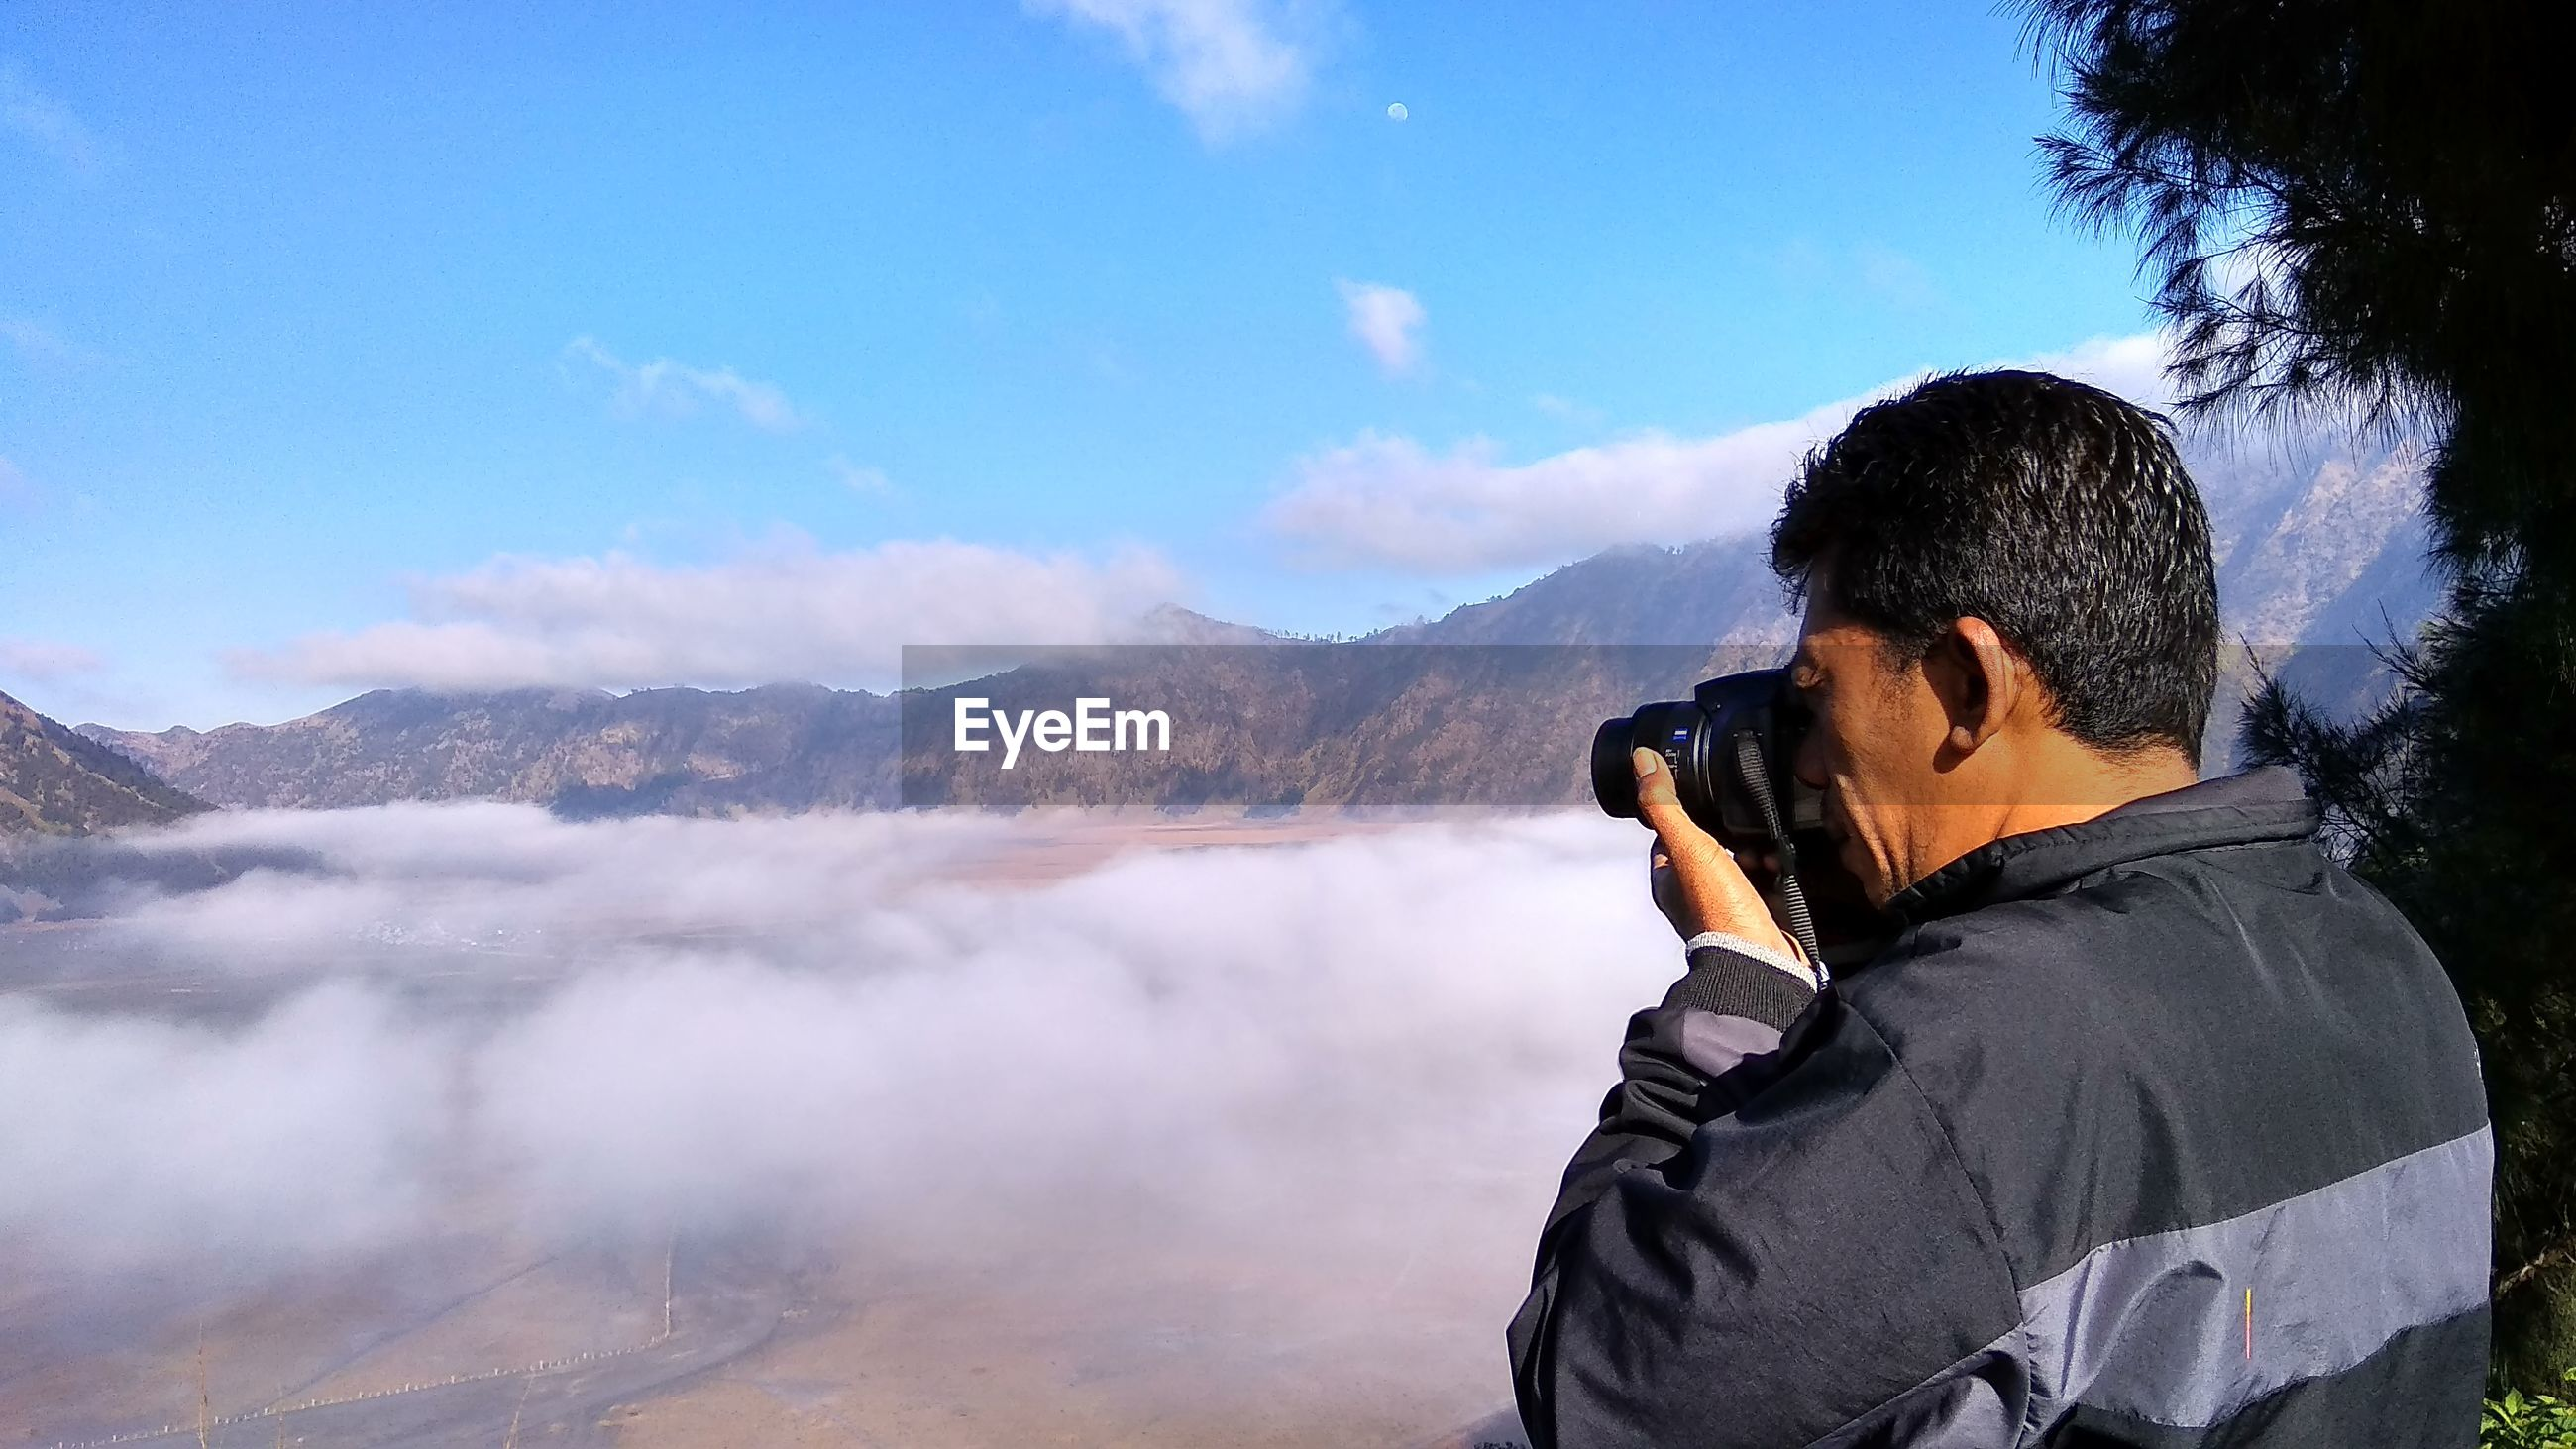 man photographing foggy landscape against mountain